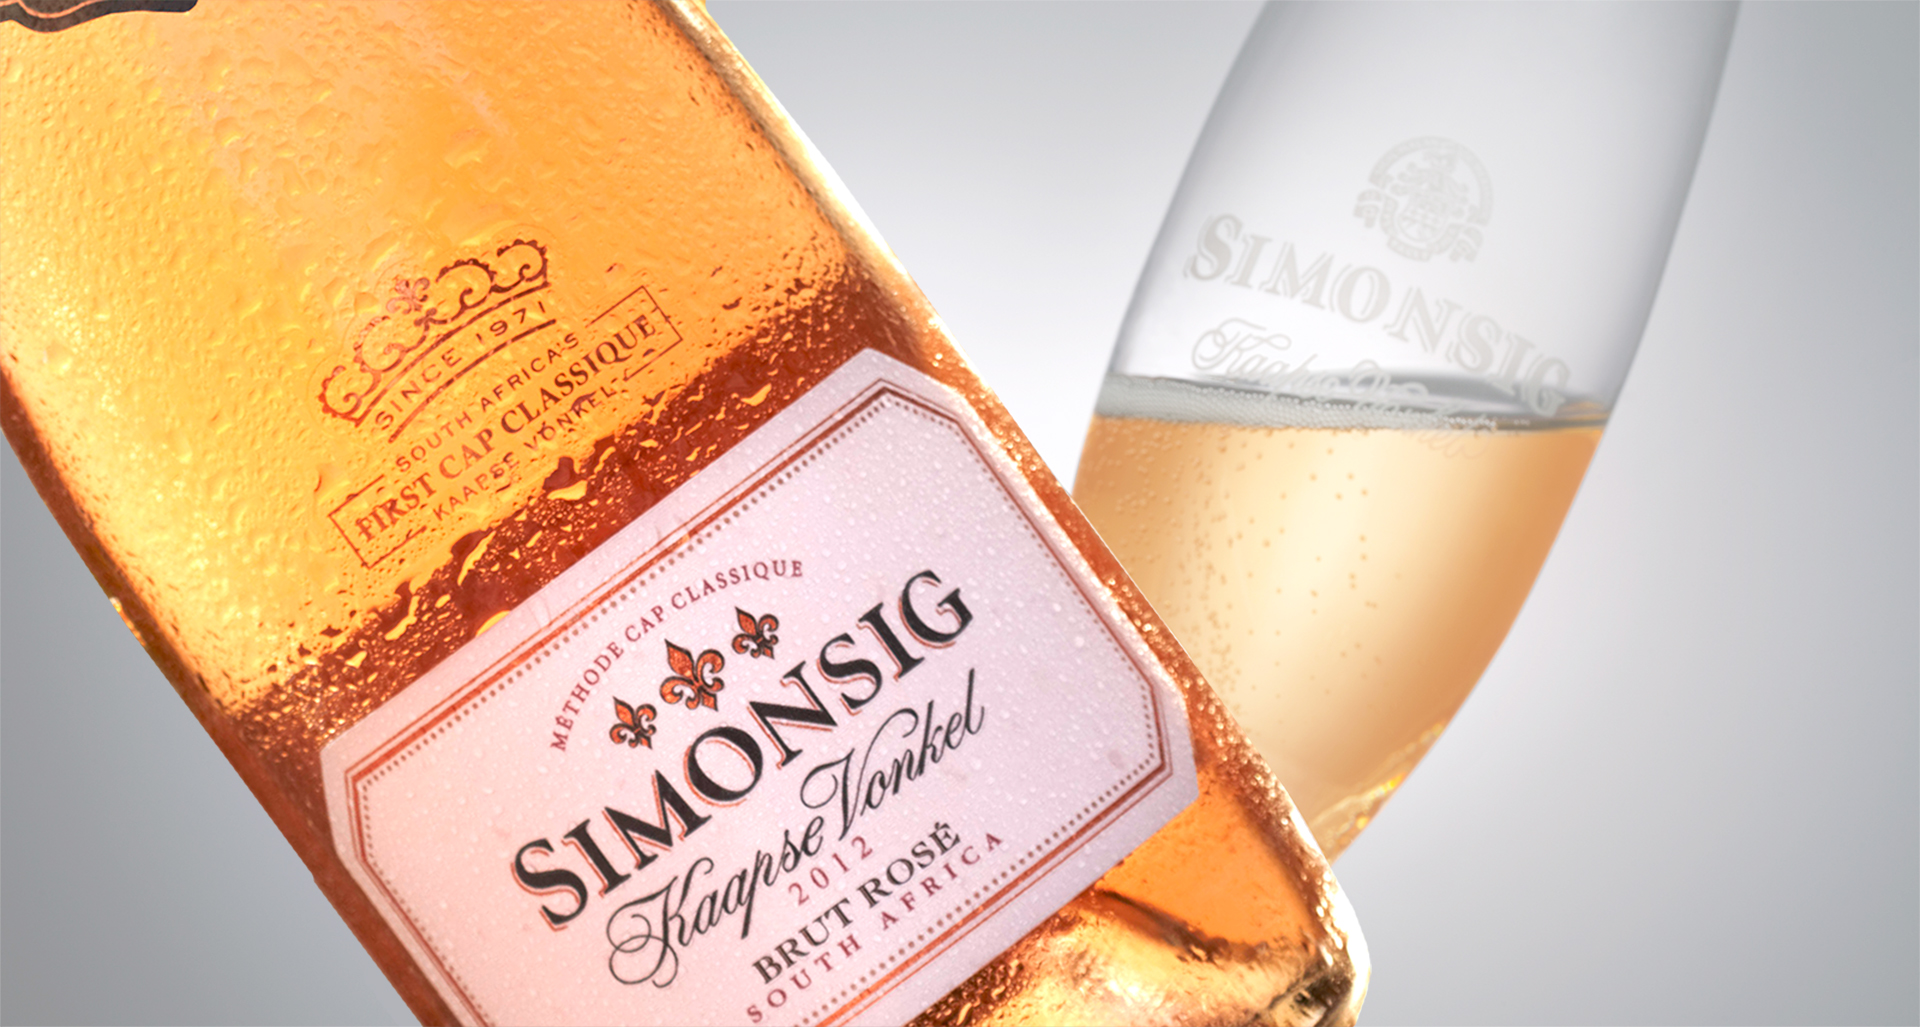 wine article Simonsig South African Star